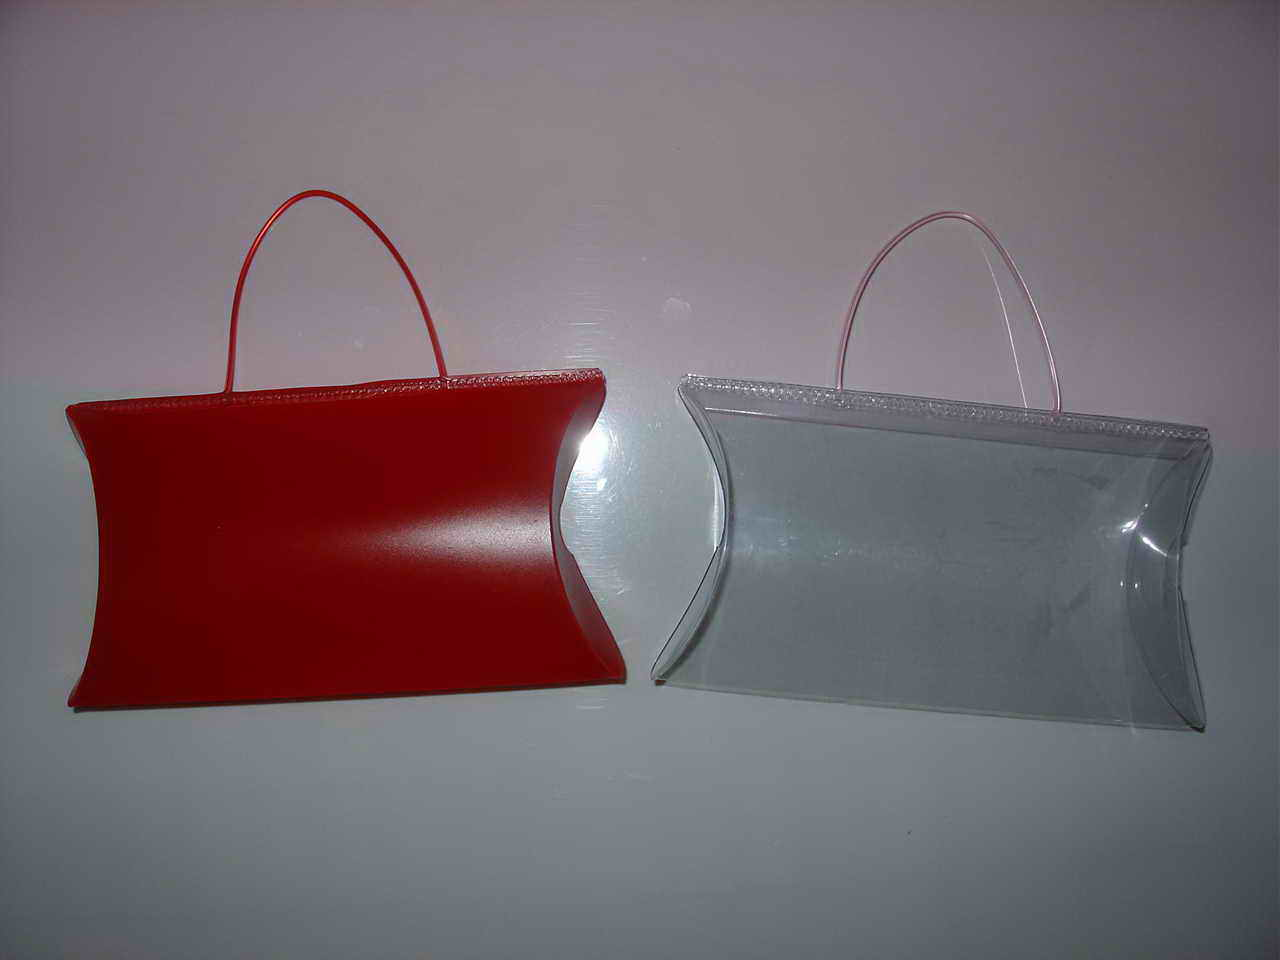 Pillow Boxes Made into Shopping Carry Bags